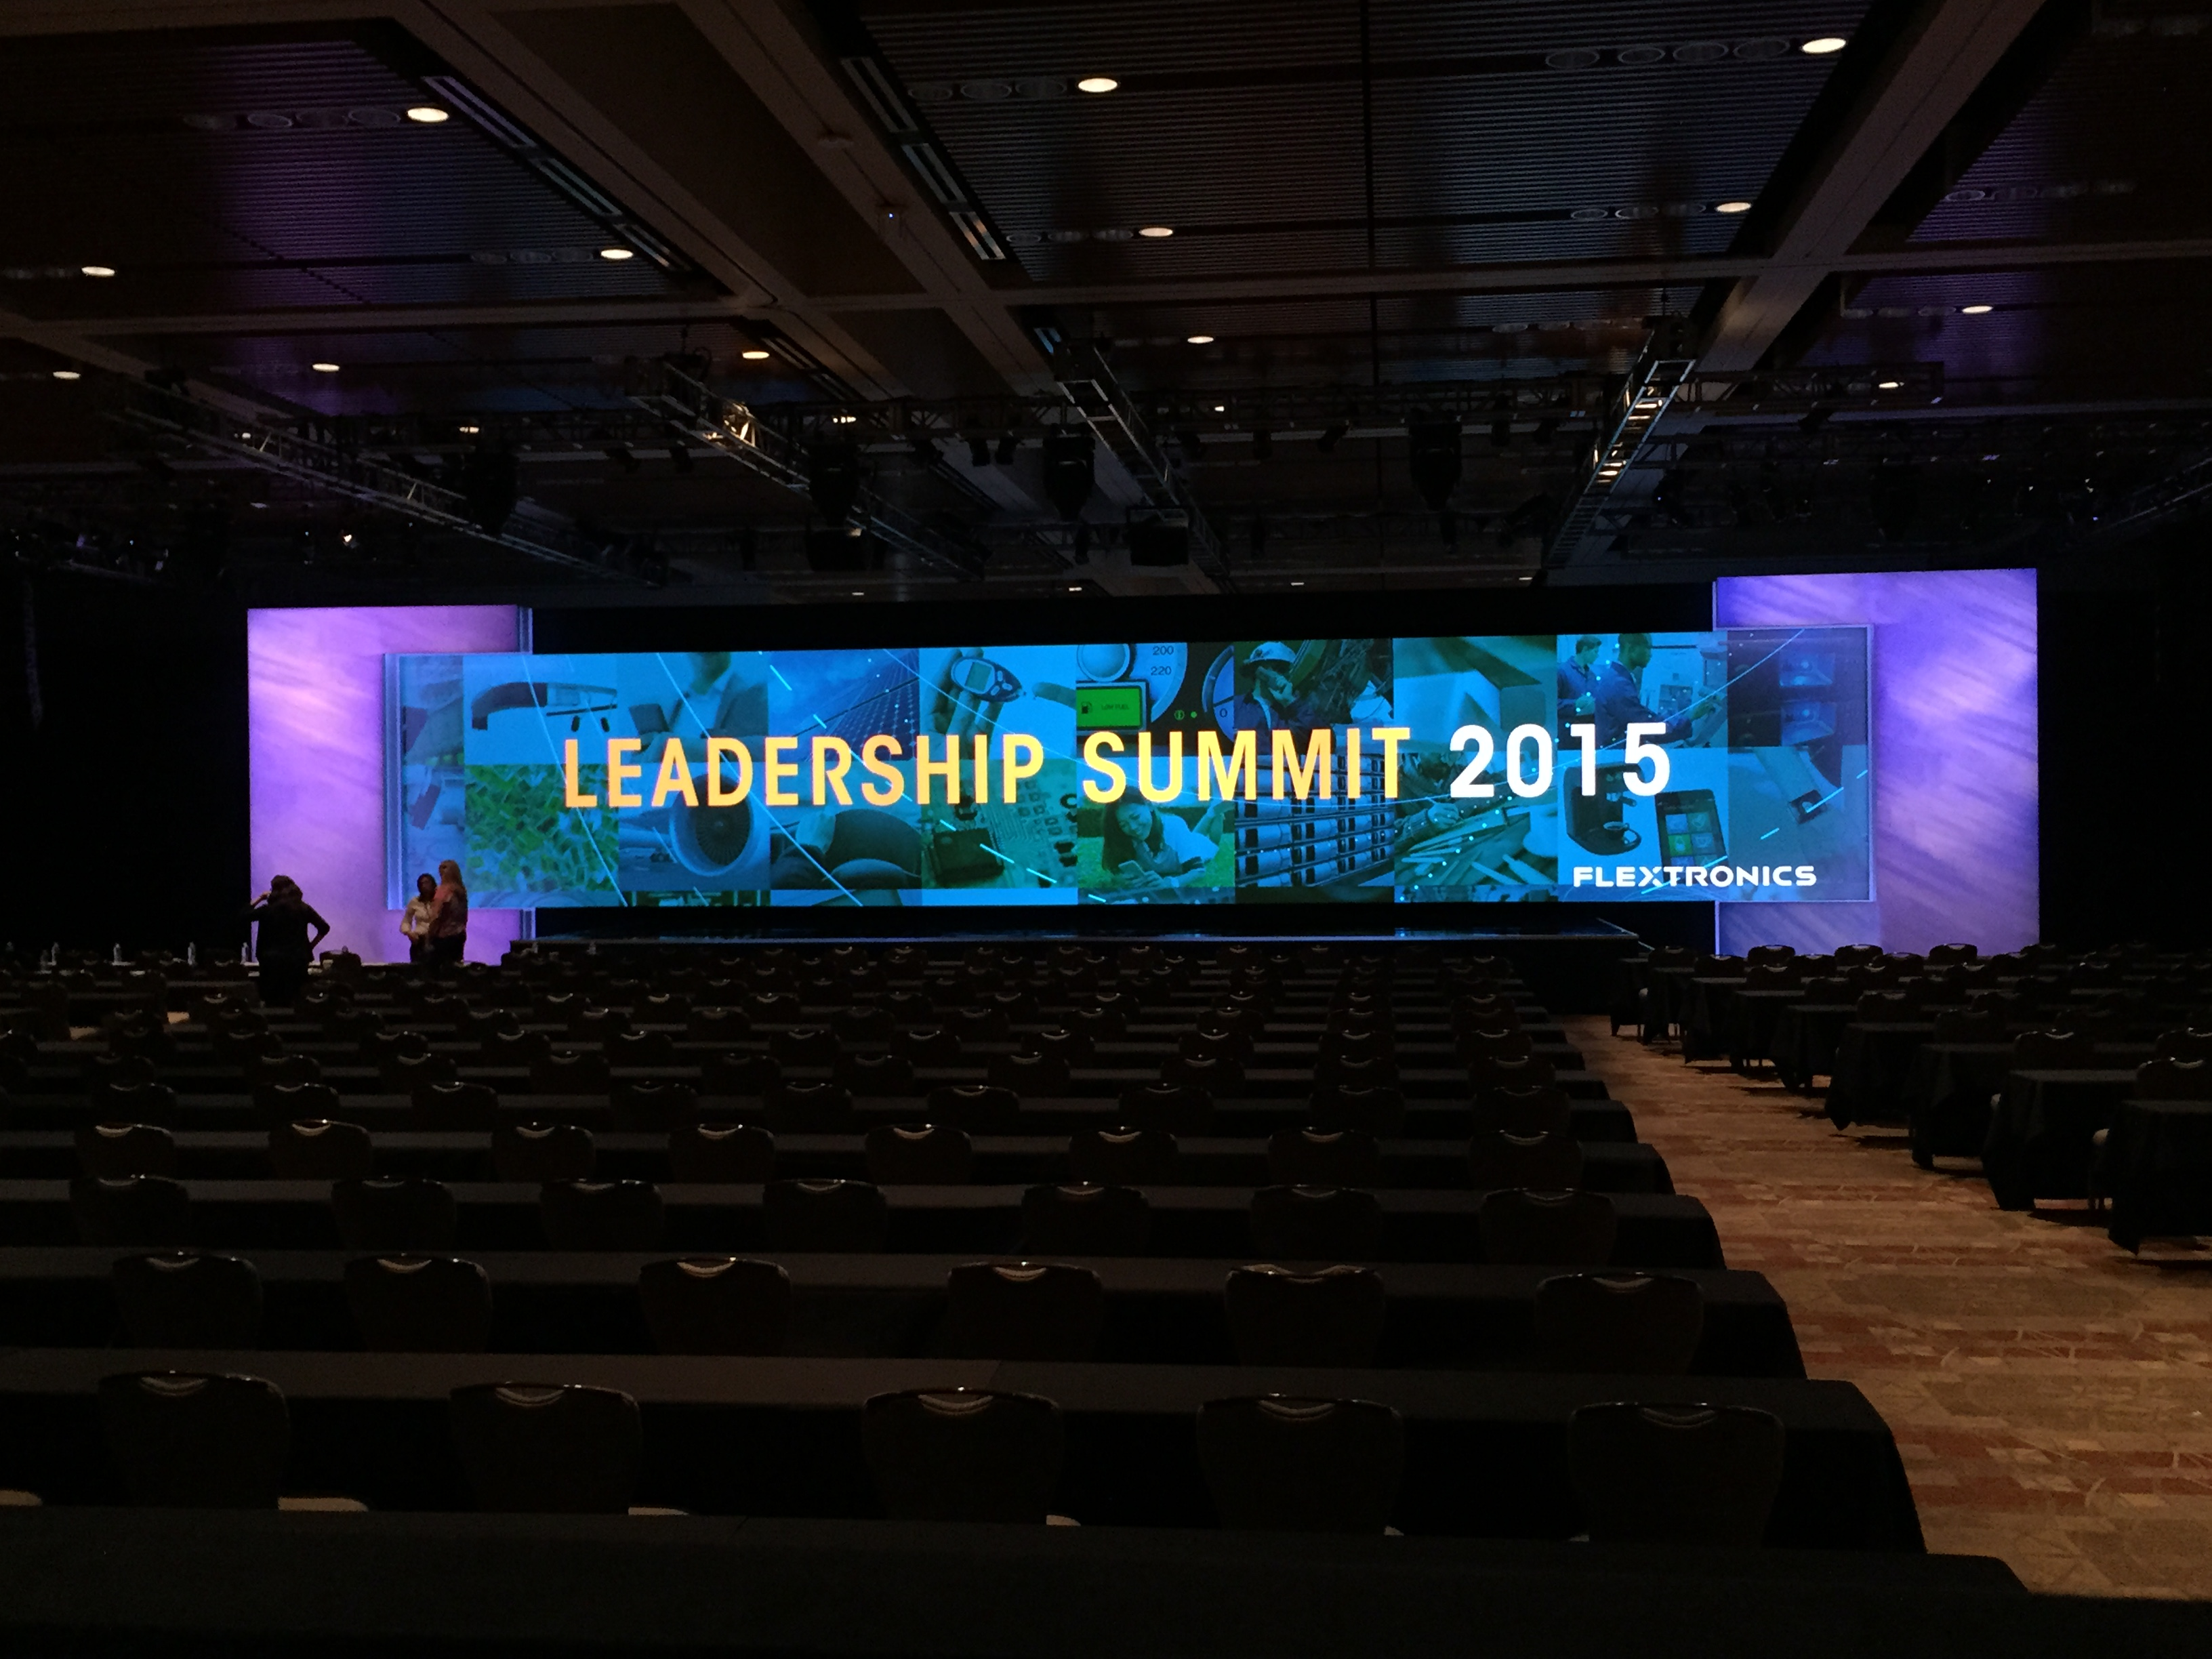 Flextronics Leadership Summit 2015